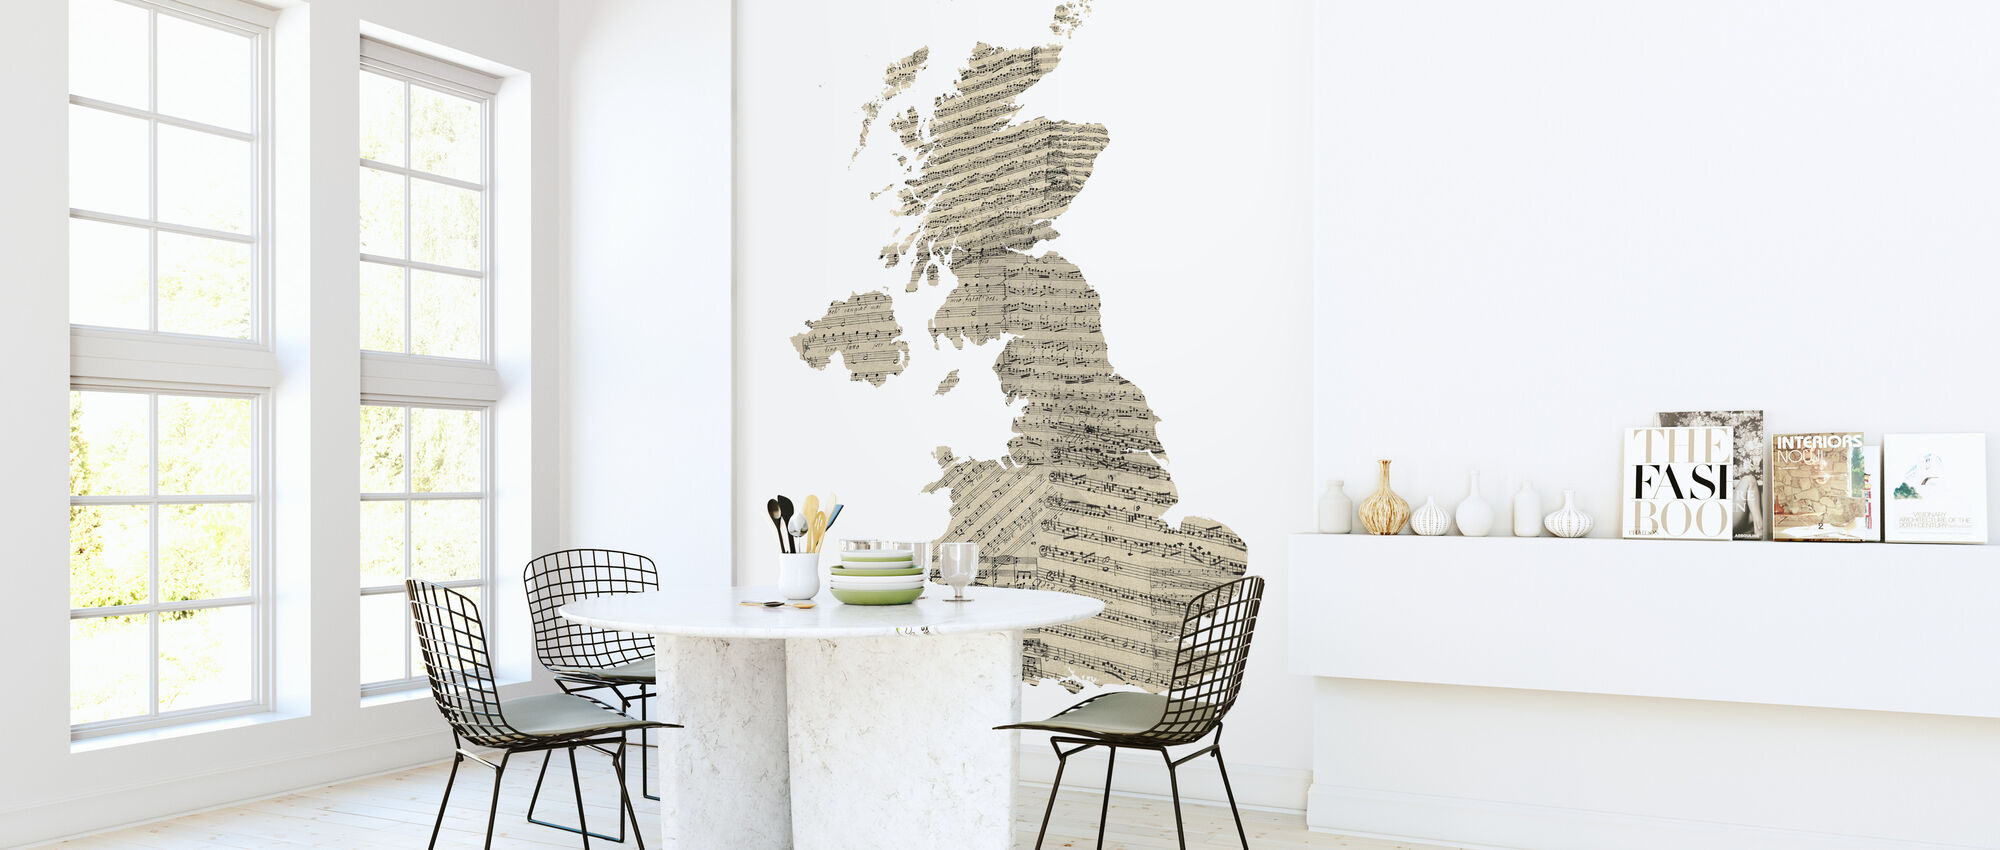 Great Britain Old Music Sheet Map - Wallpaper - Kitchen